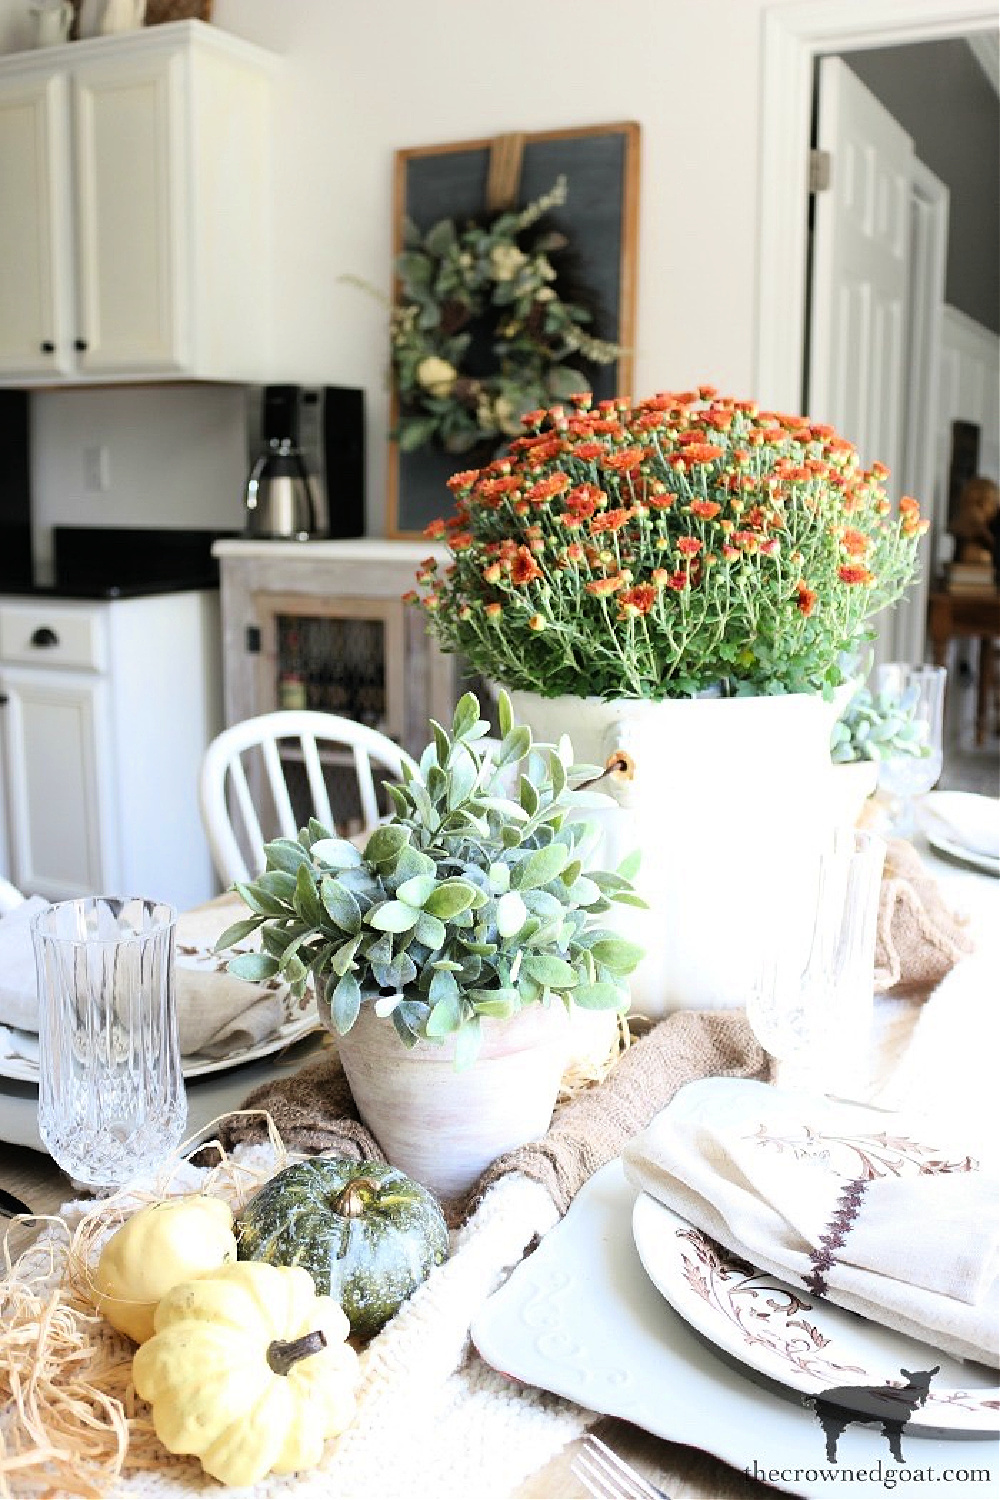 Simple Ways to Prepare Now for the Holidays-Festive Tablescapes in the Breakfast Nook-The Crowned Goat